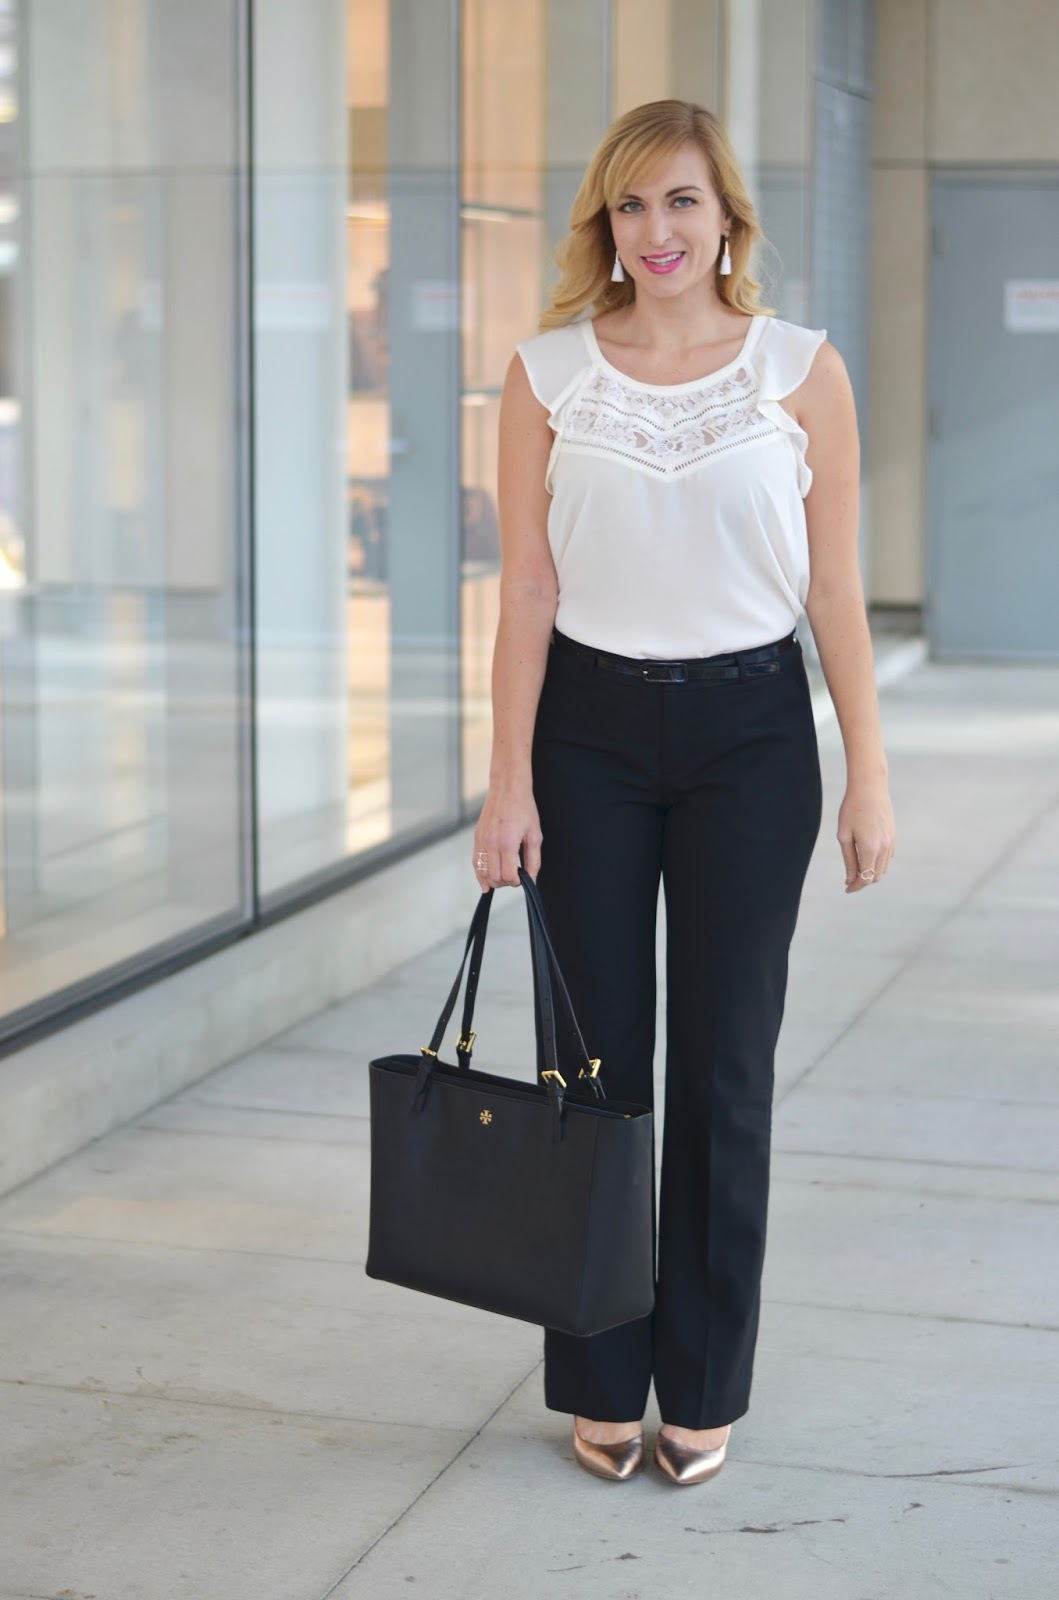 Classic Work Outfit Idea Black Pants White Top Rose Gold Accessories